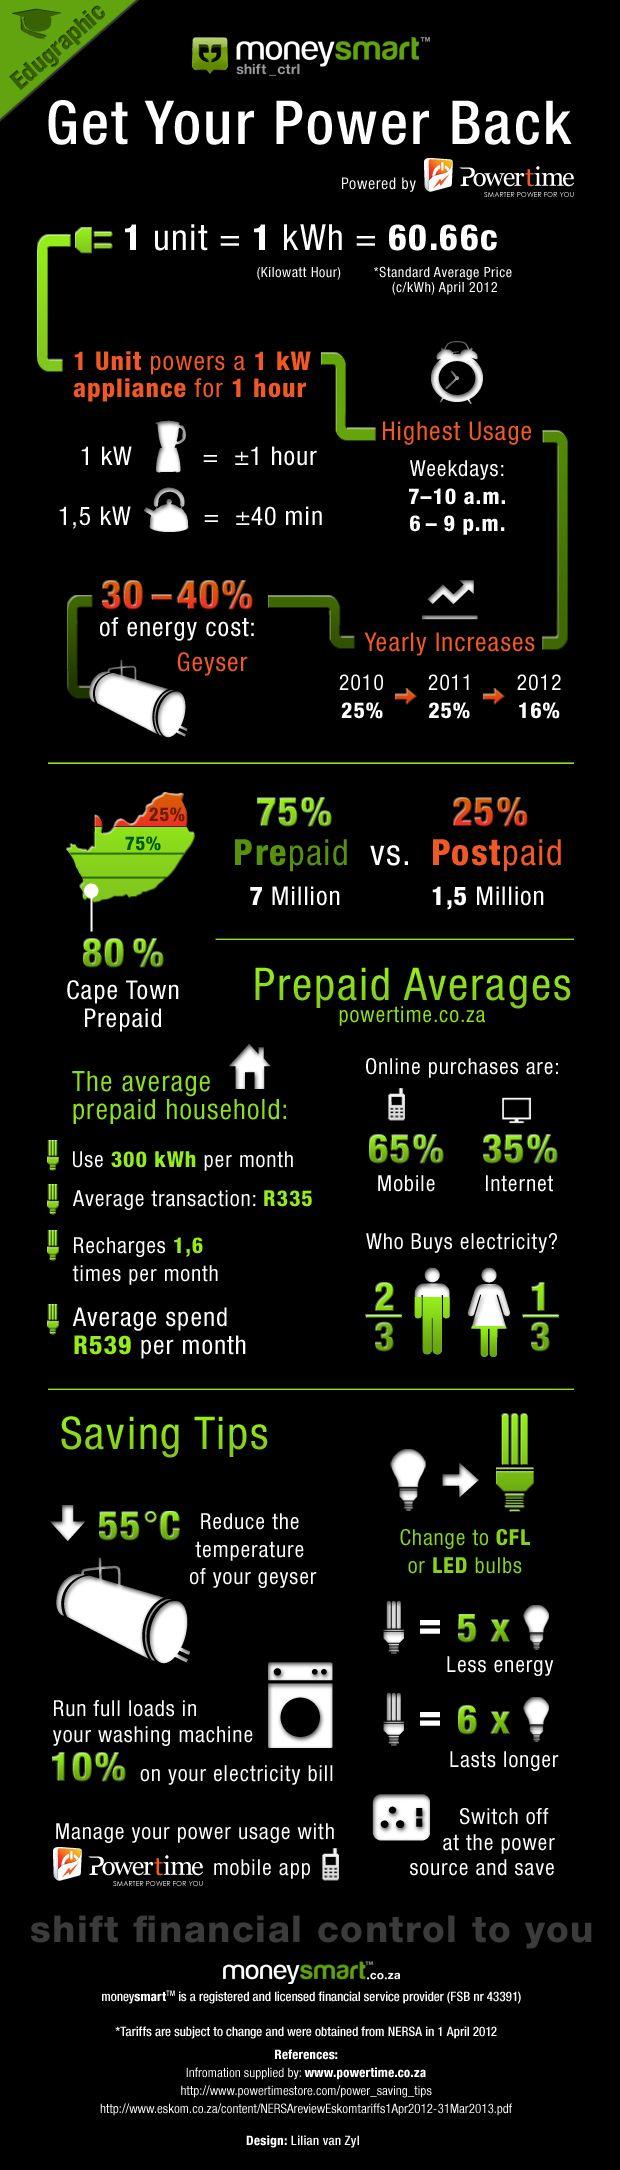 Get your #power back #edugraphic save money on #prepaid #electricity @MONEYchirps